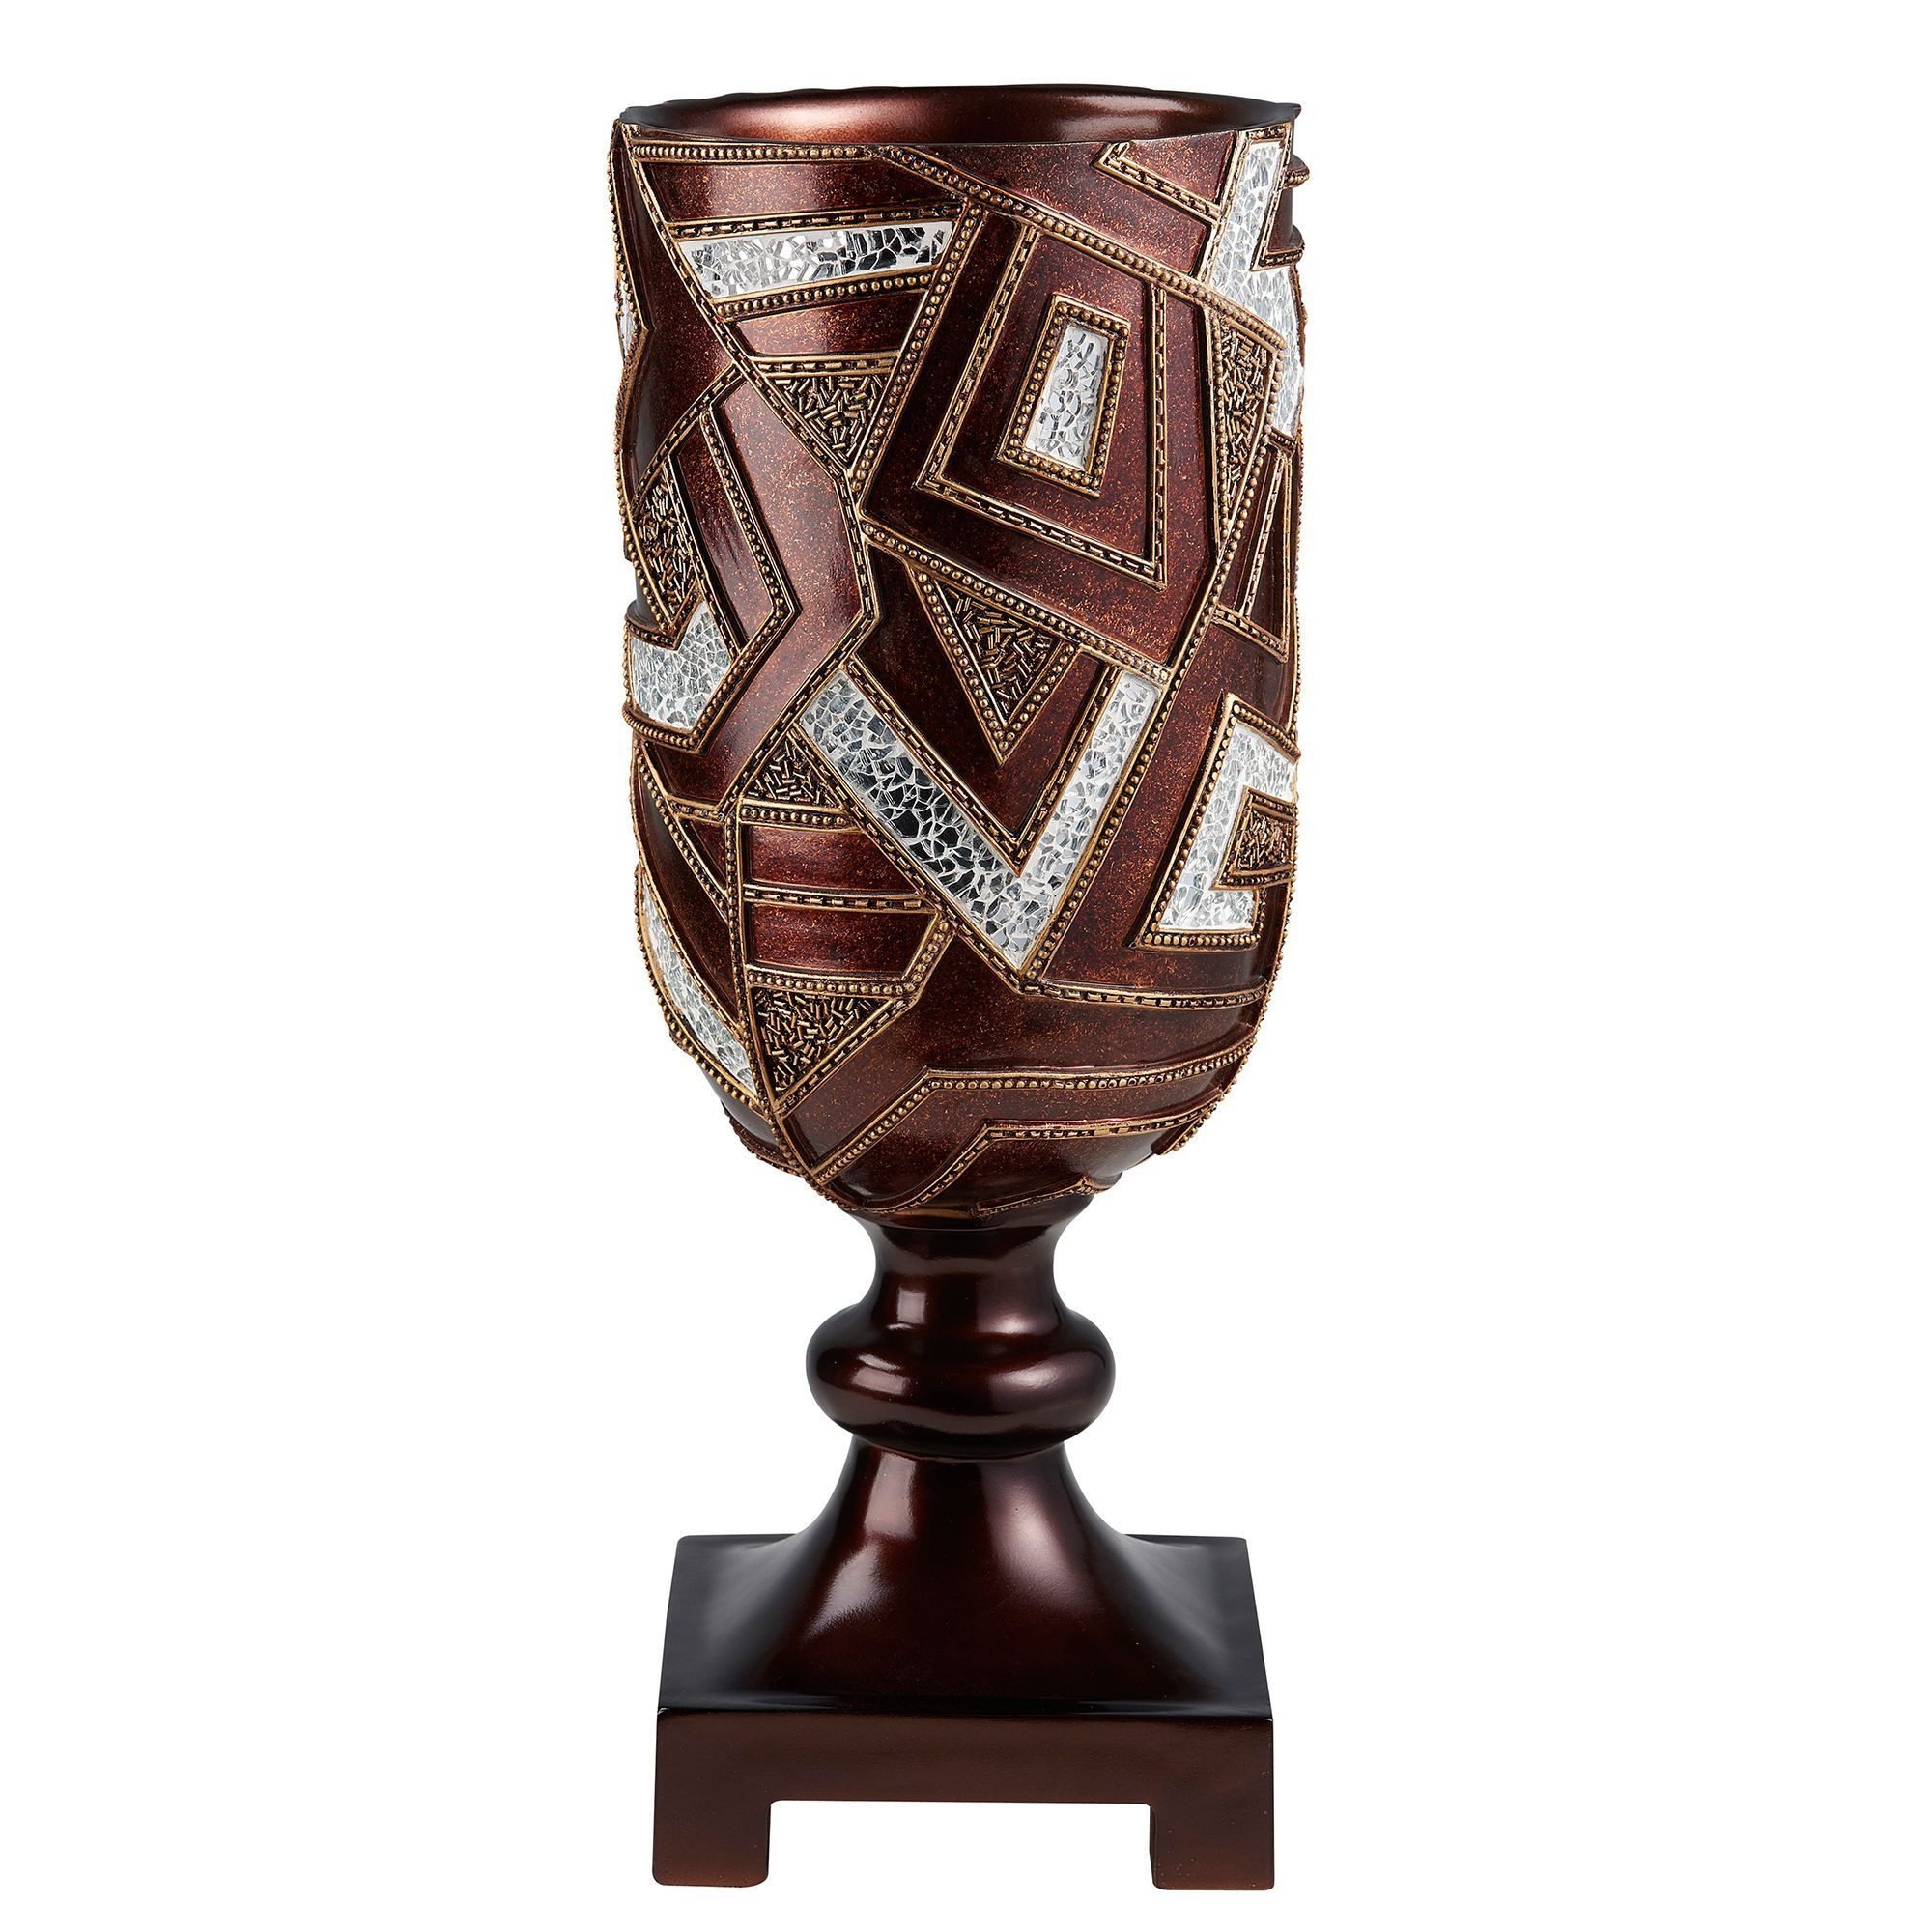 kate spade glass vase of ore international gold and brown polyresin 19 75 inch mosaic in ore gold and 19 75 inch mosaic decorative vase